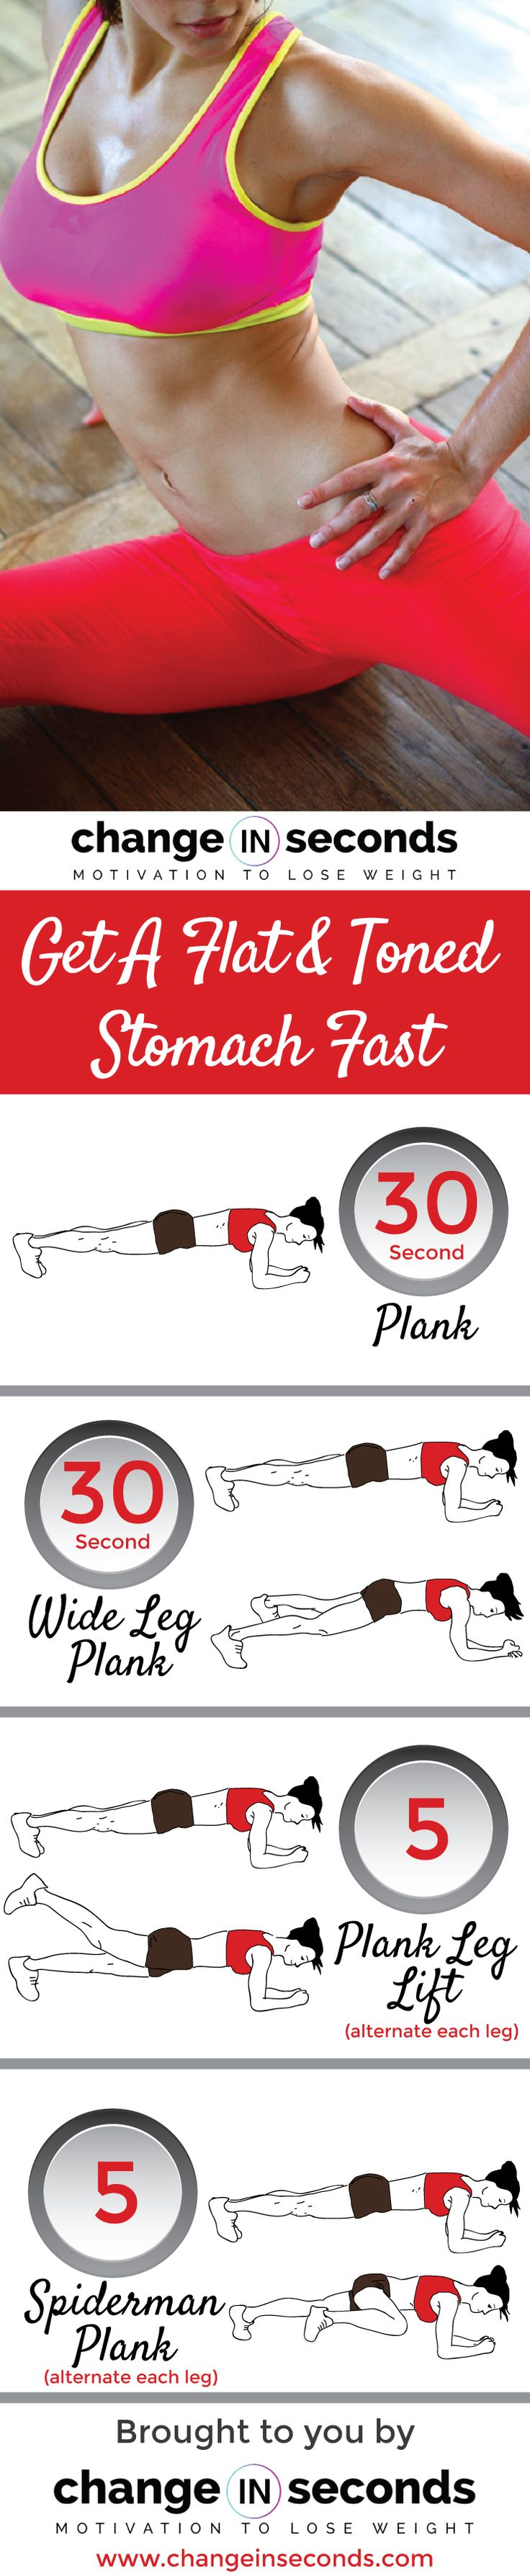 Get A Flat And Toned Stomach Fast (Download PDF)